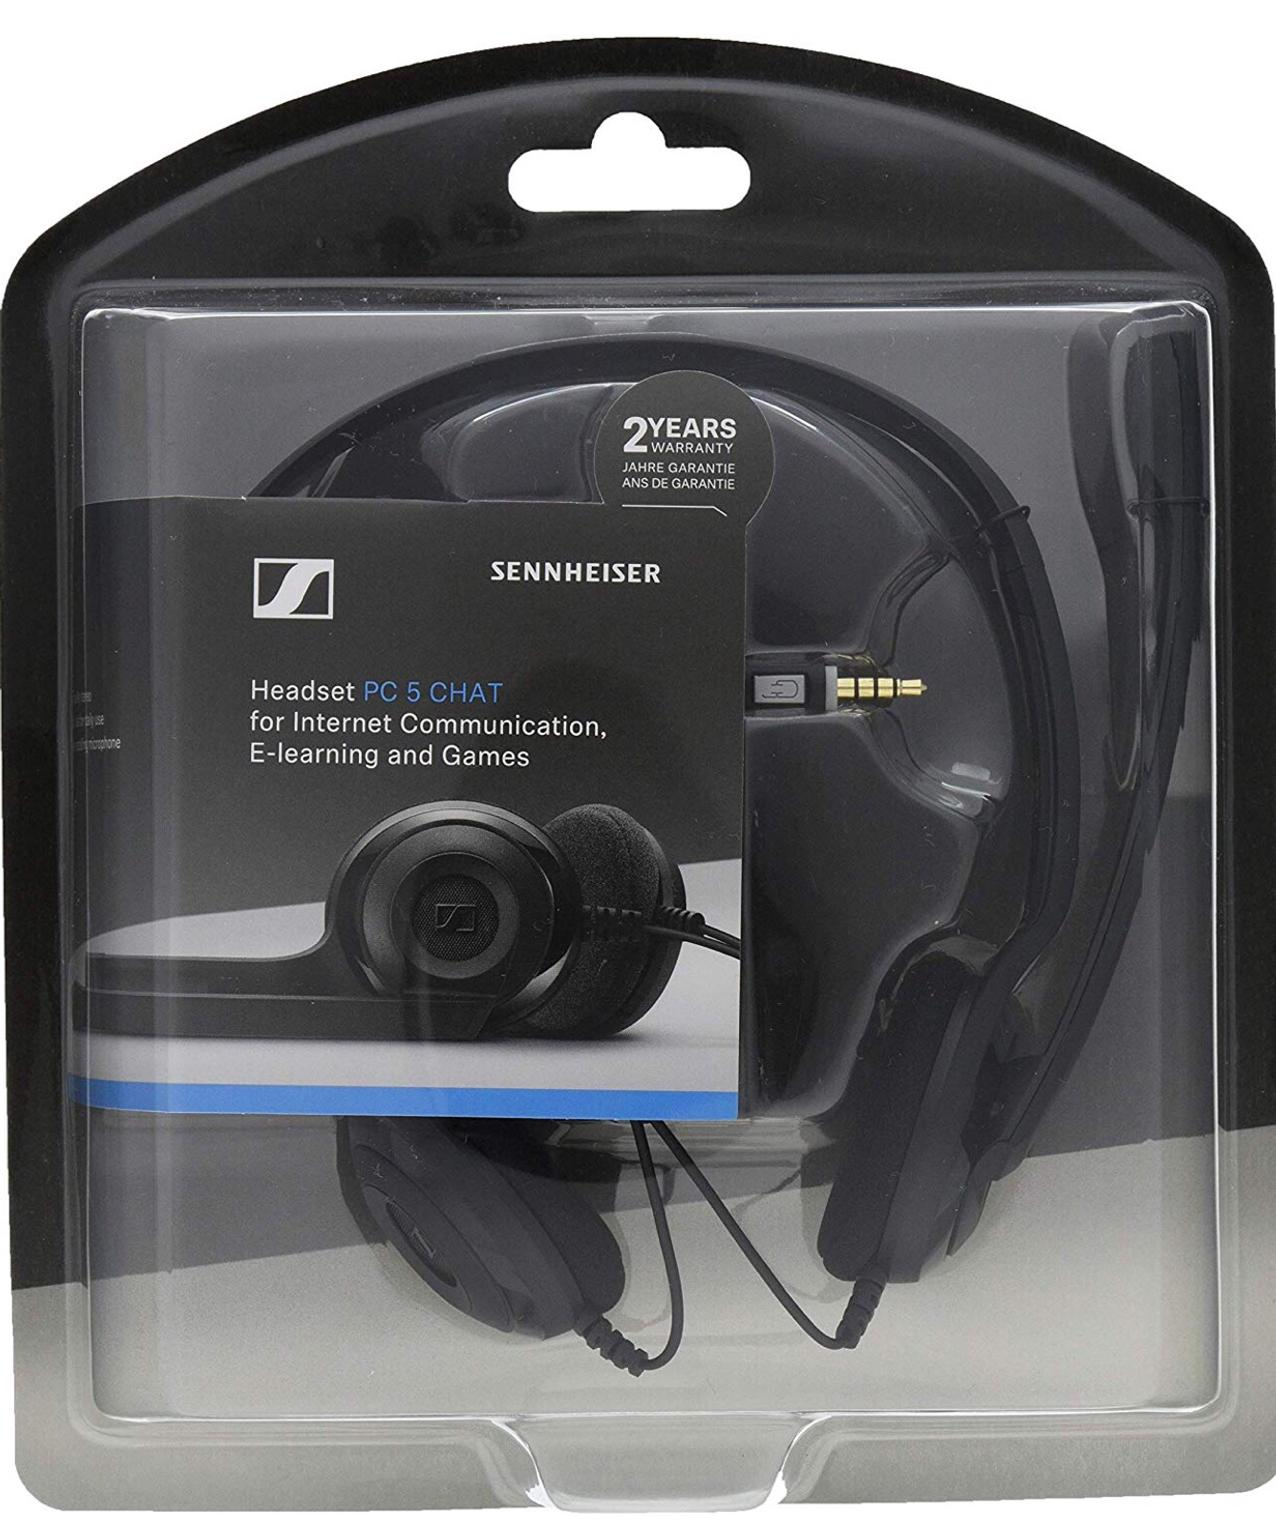 SENNHEISER HEADSET PC 5 CHAT